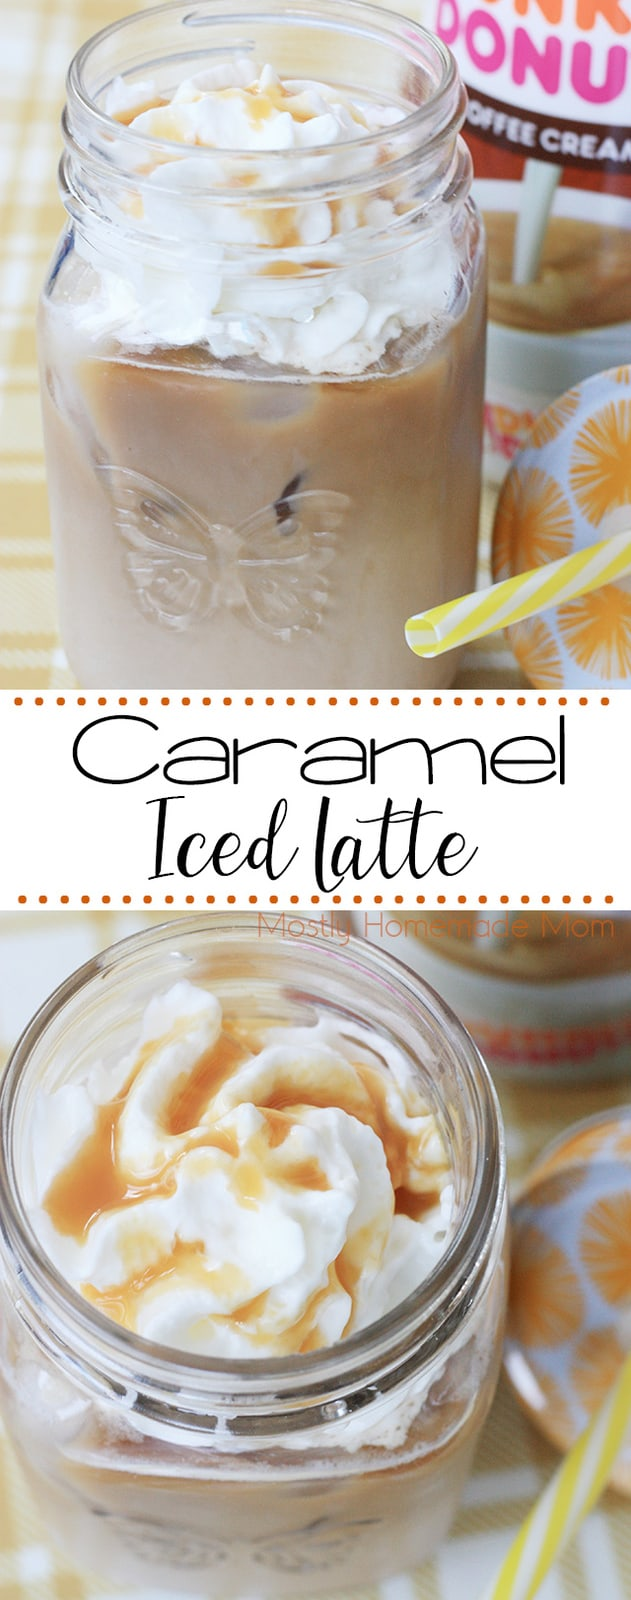 Iced Caramel Latte - Making your own iced caramel latte is so easy! Strong coffee, Dunkin' Donuts Caramel Creamer, whipped cream, and ice with an extra caramel drizzle.